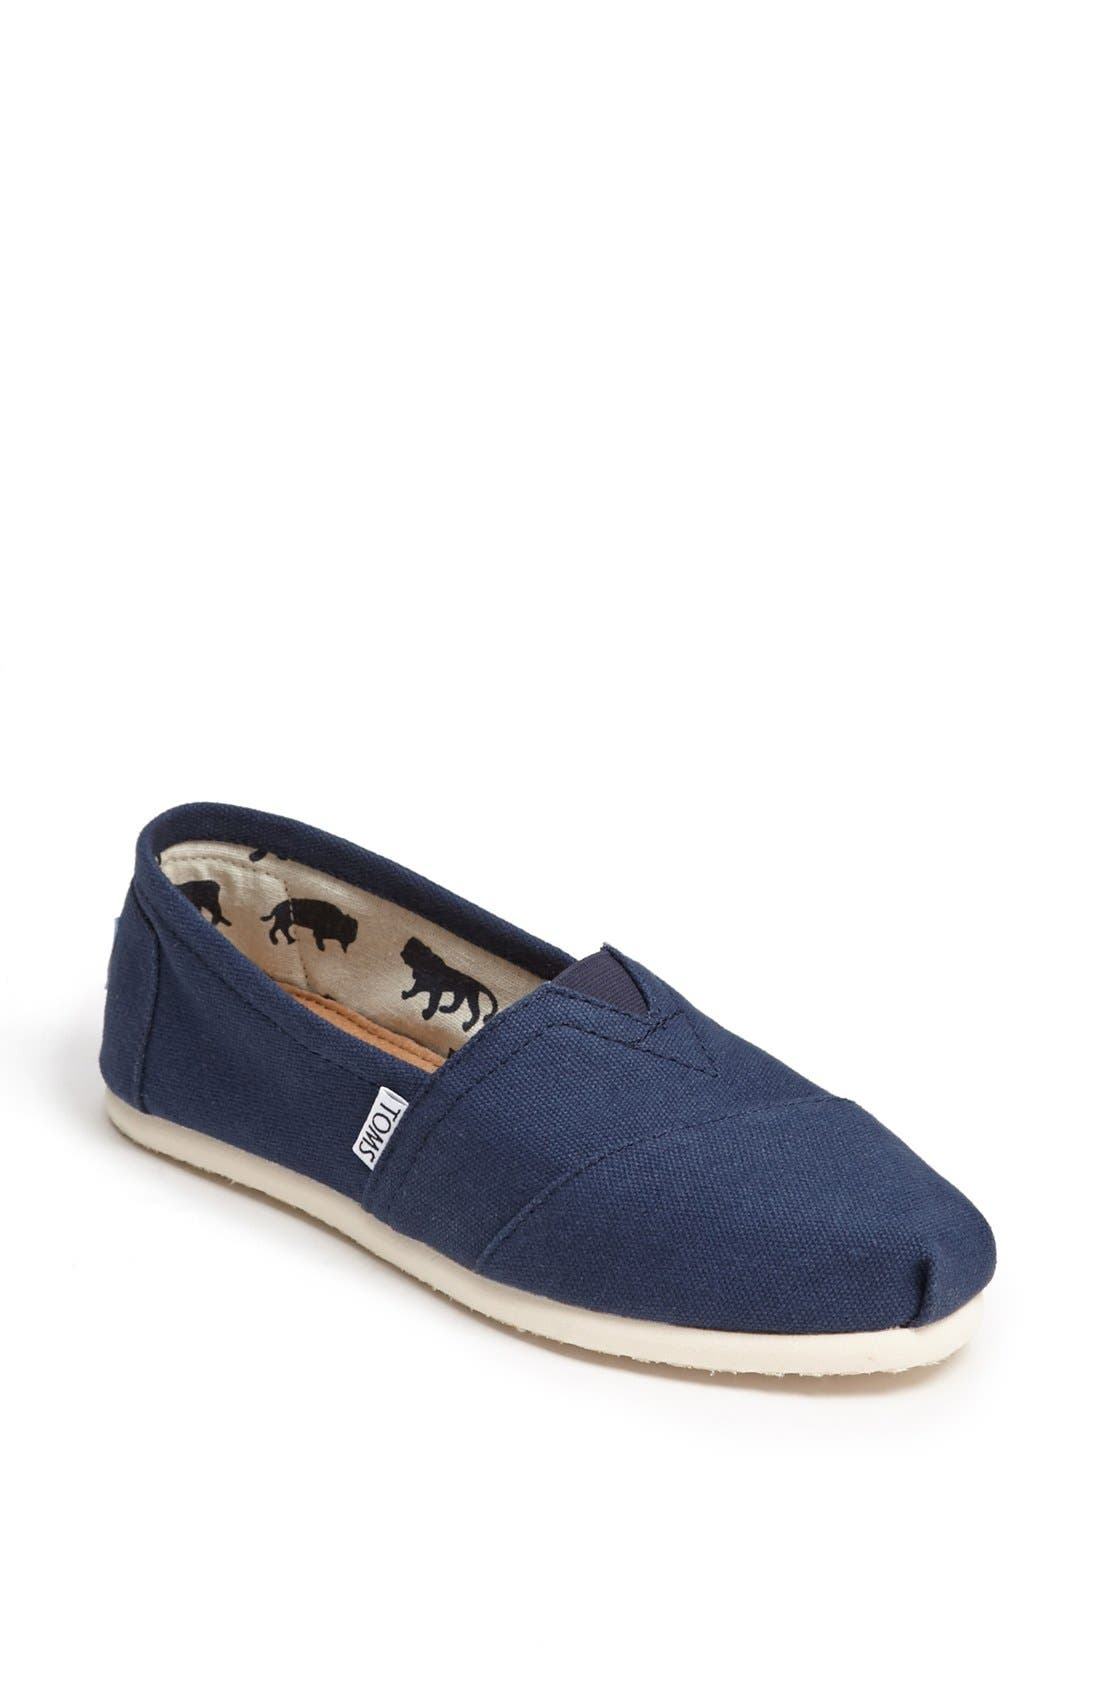 Main Image - TOMS 'Classic' Canvas Slip-On (Women)